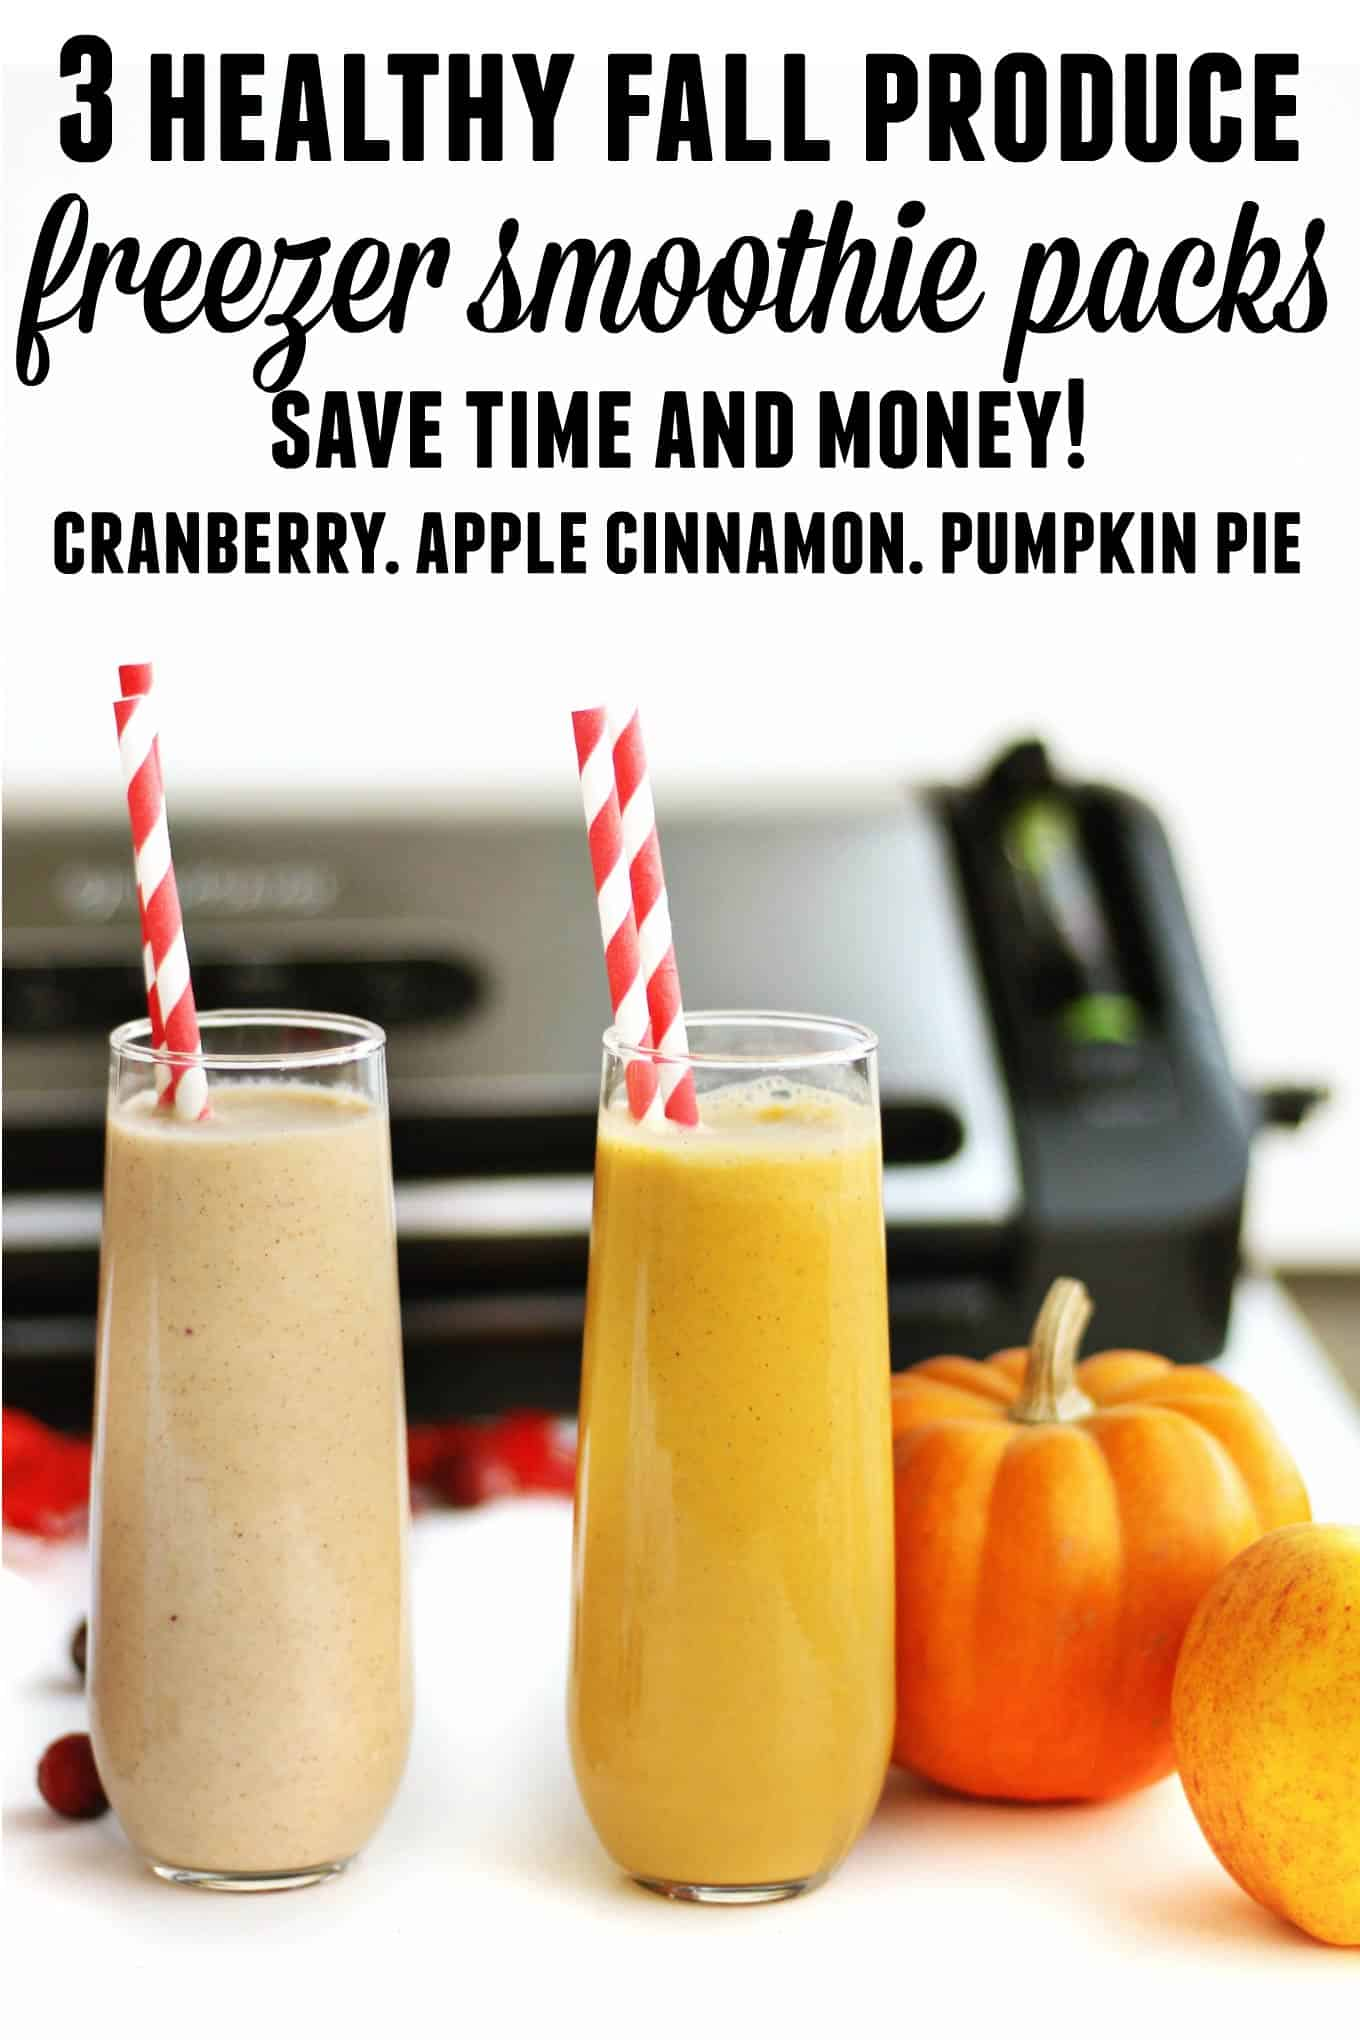 3 healthy, fresh fall freezer smoothie packs recipes! Save time and money by freezing your favorite seasonal produce into ready to make and serve smoothies. // Rhubarbarians // Cranberry yogurt smoothie recipe / Apple cinnamon smoothie recipe / Pumpkin pie smoothie recipe / Grab and go breakfast / Food saver / vacuum sealer / freezer meals / toddler kid friendly snack / #freezerpacks #fallsmoothies #rhubarbarians